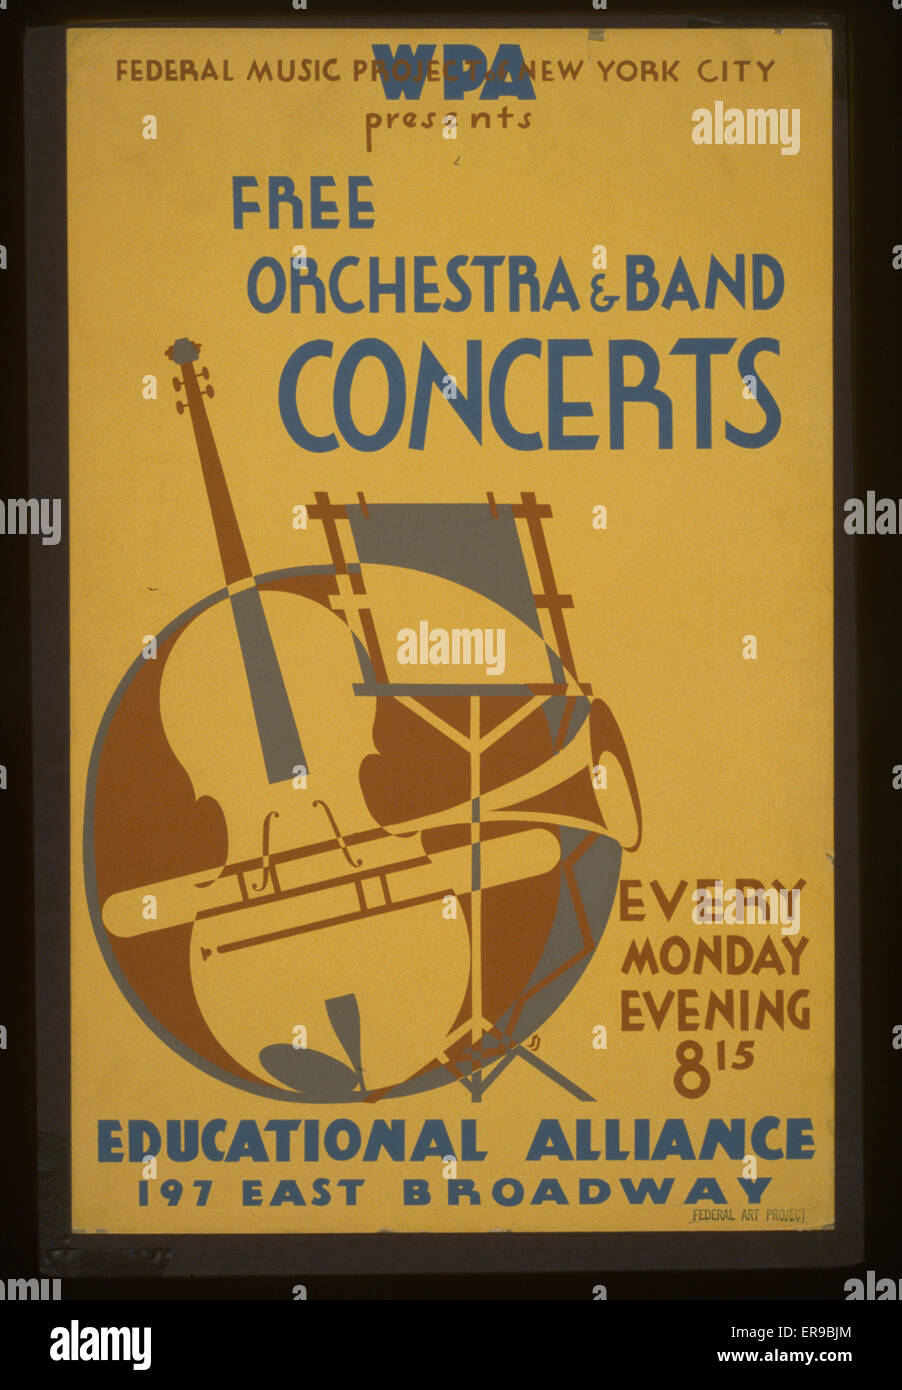 WPA Federal Music Project of New York City presents free